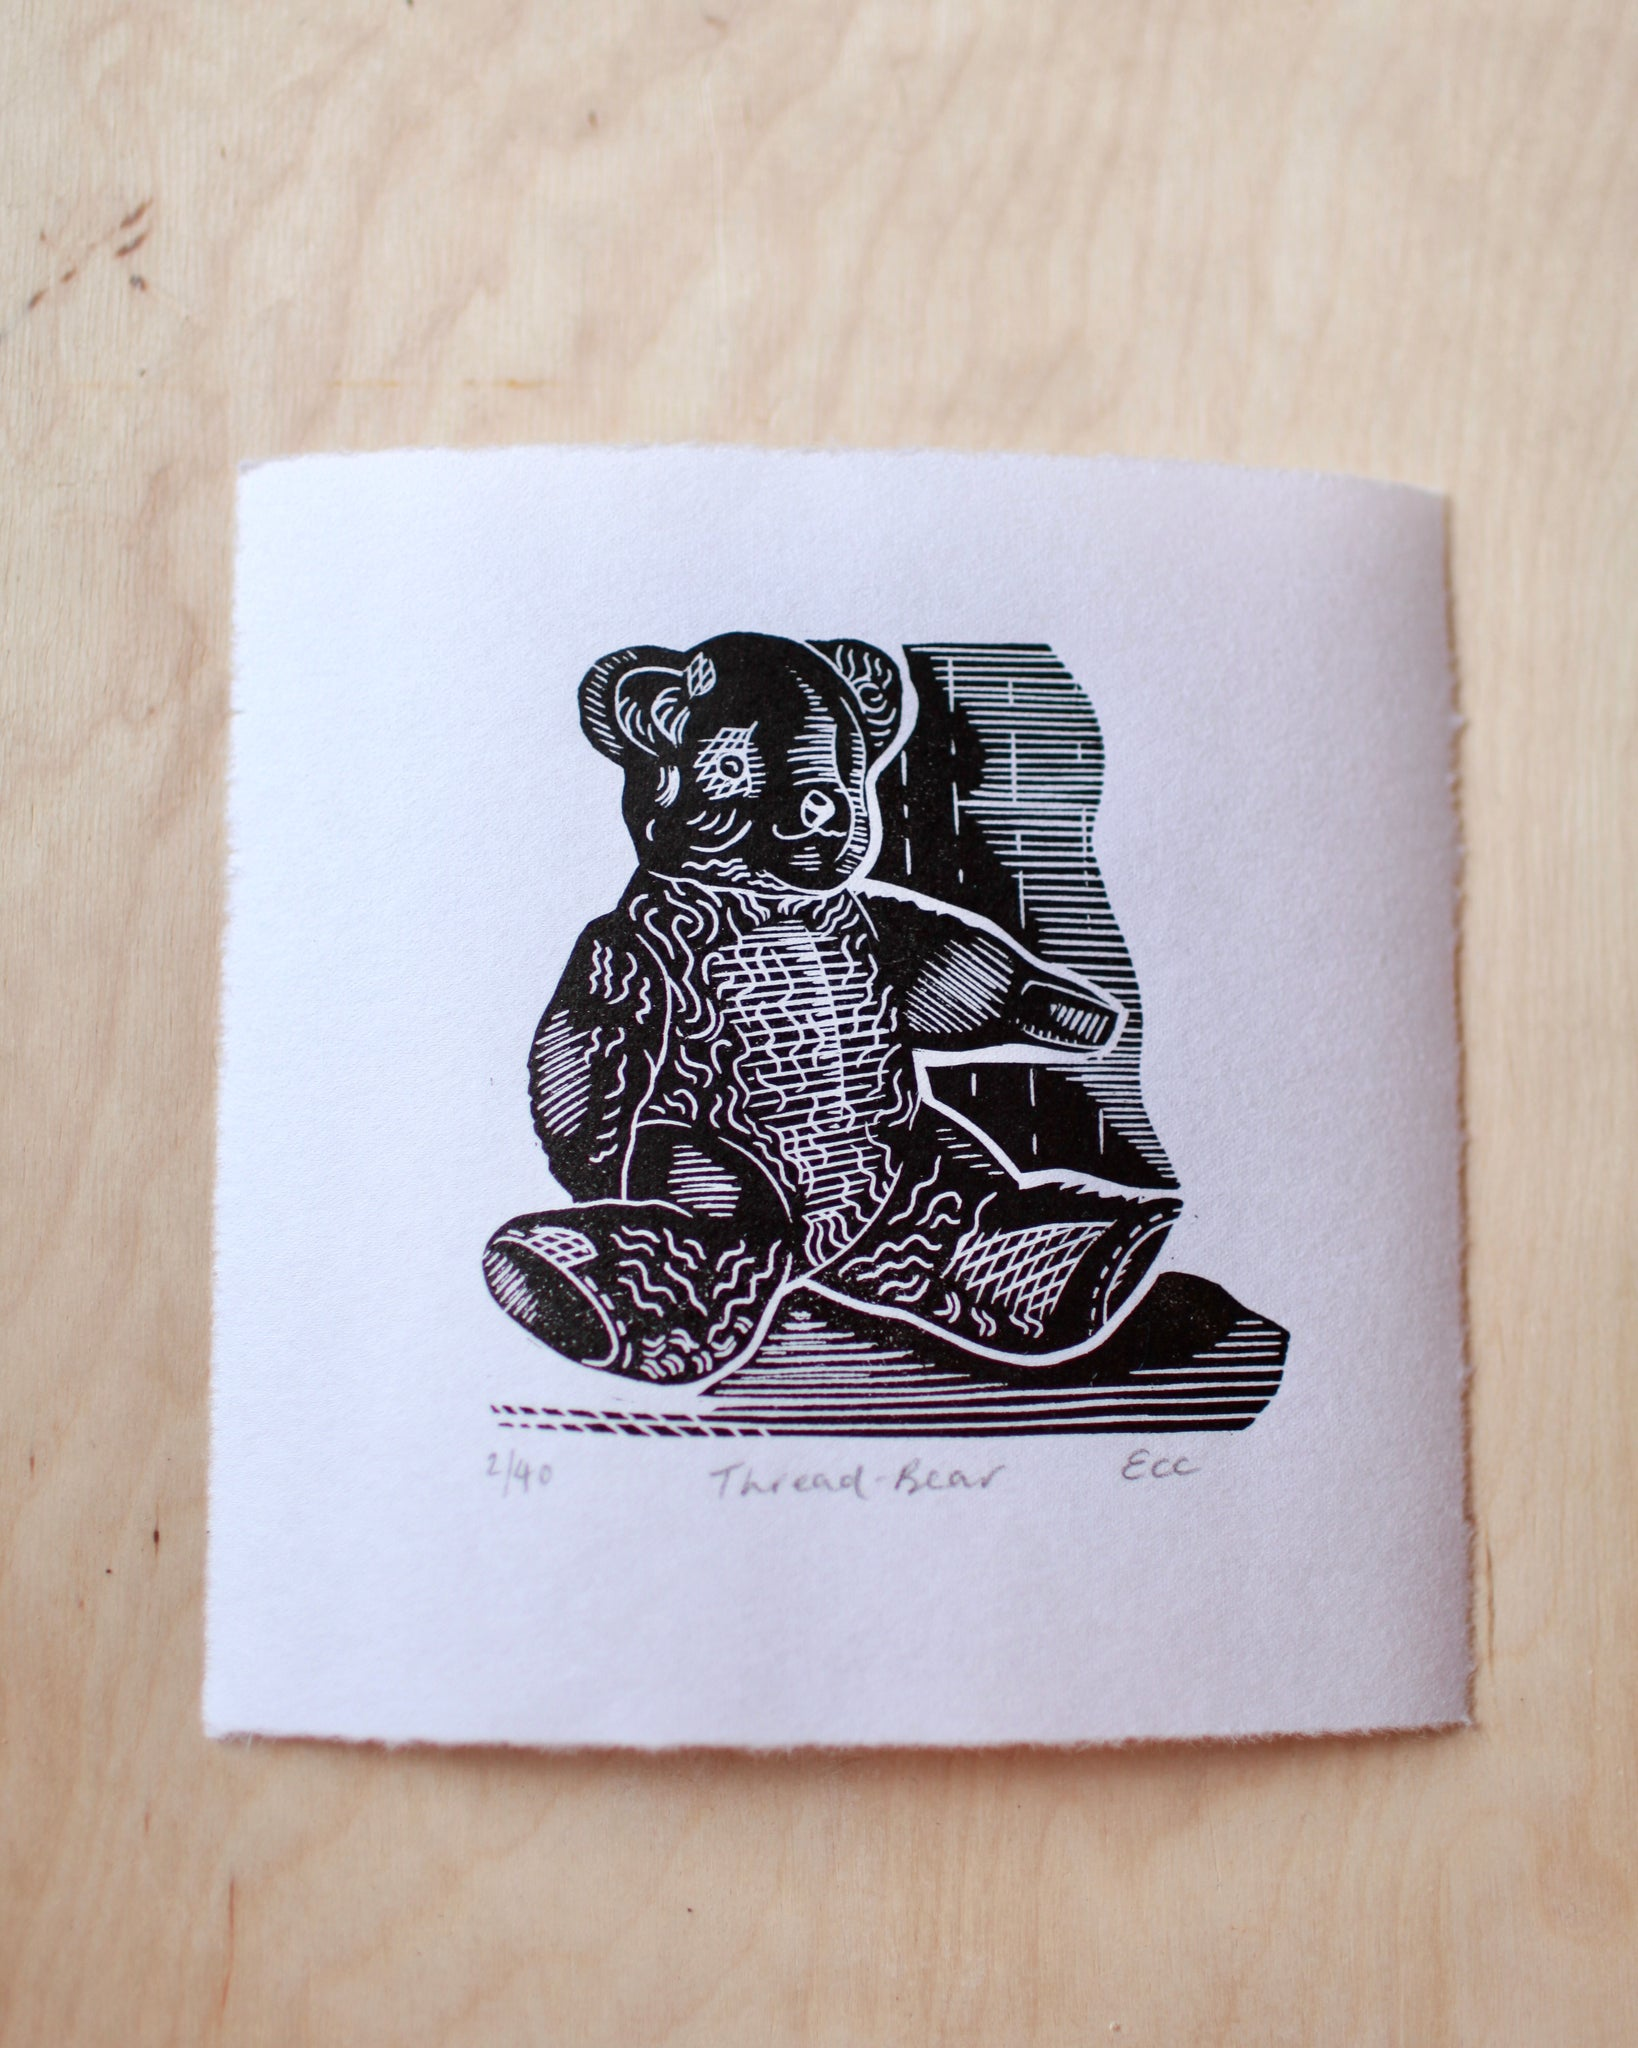 Thread-bear lino print